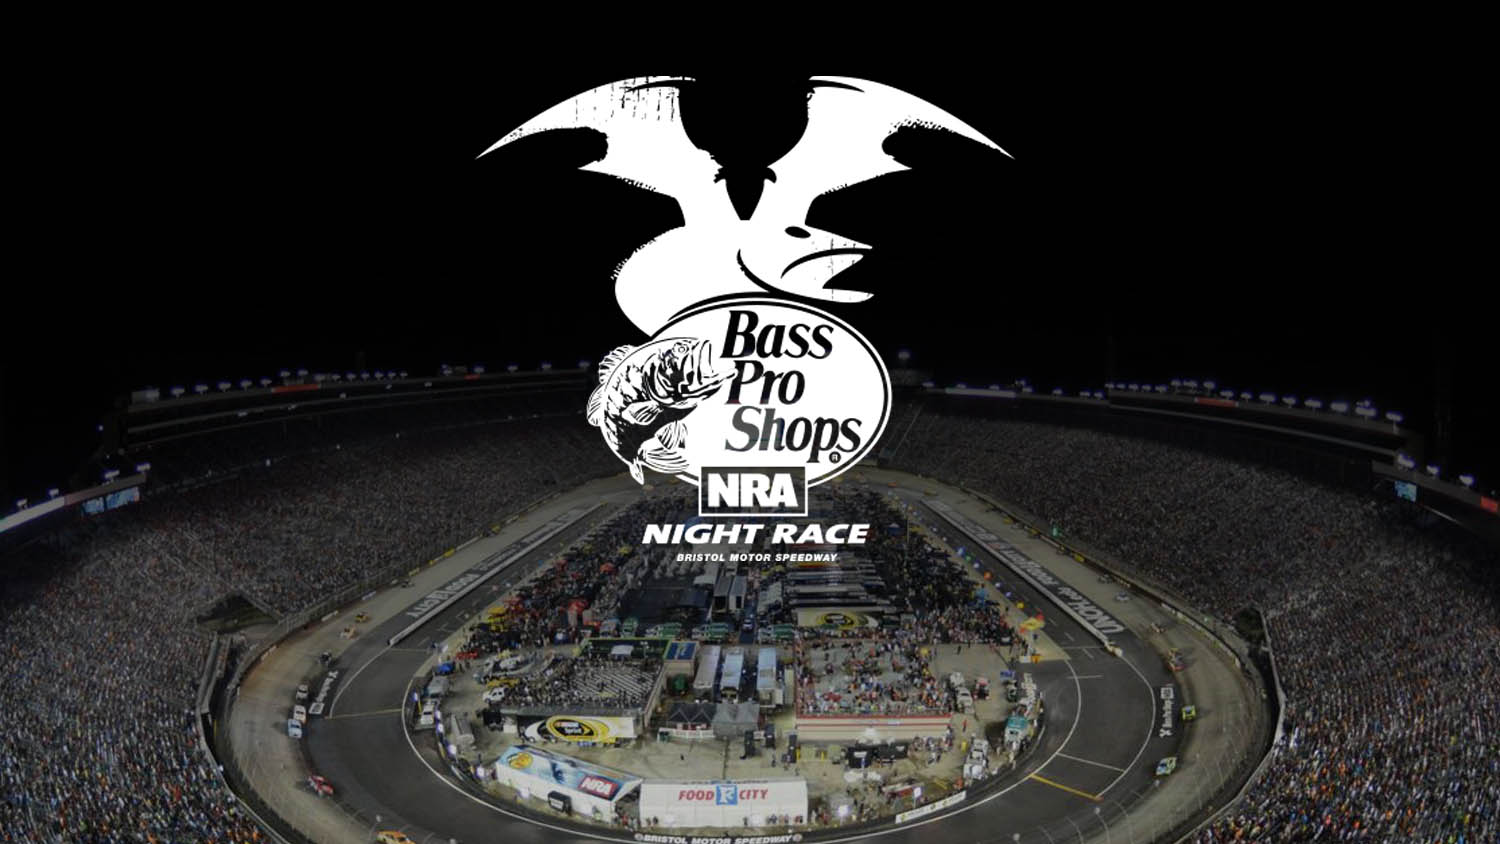 Bass Pro Shops NRA Night Race Coming Aug. 18 at Bristol Motor Speedway